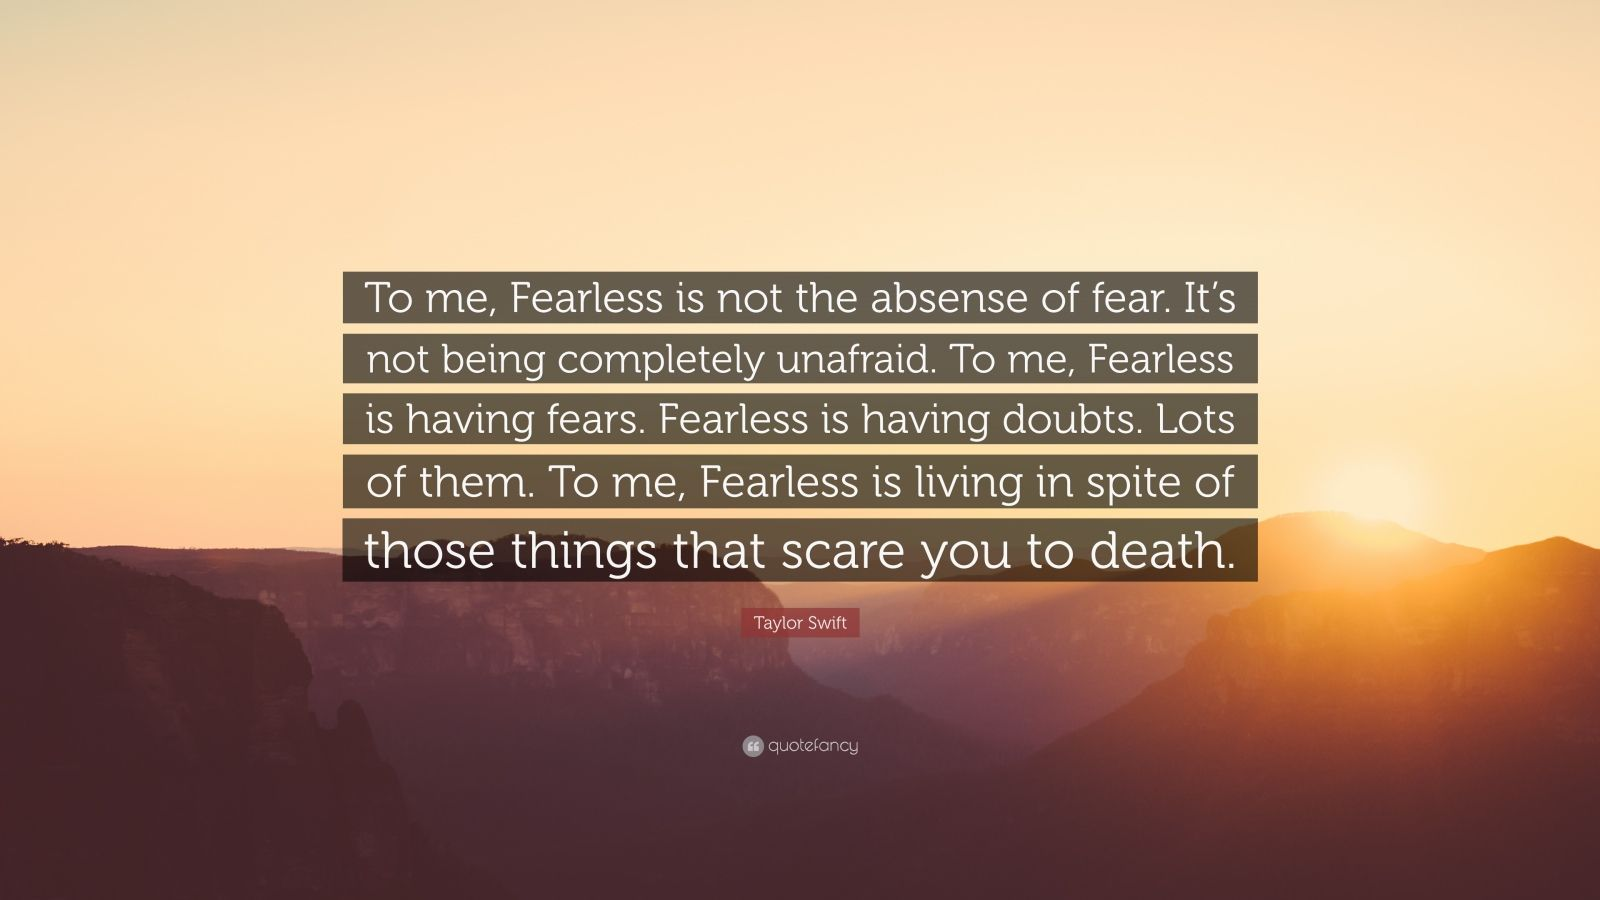 "Taylor Swift Quote: ""To me, Fearless is not the absense of fear. It's not being completely unafraid. To me, Fearless is having fears. Fearless is having doubts. Lots of them. To me, Fearless is living in spite of those things that scare you to death."""